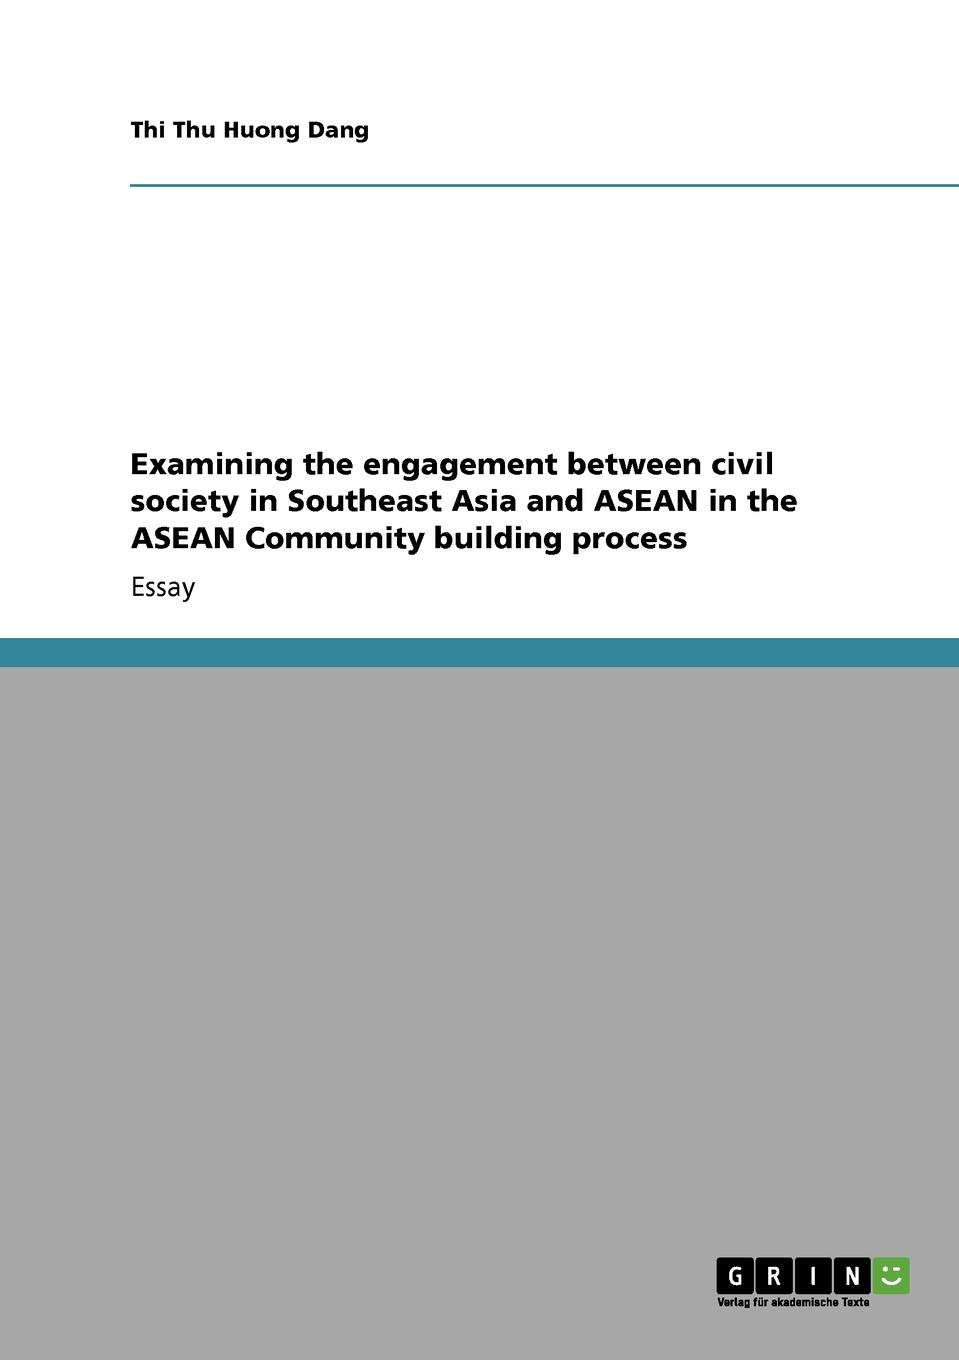 Thi Thu Huong Dang Examining the engagement between civil society in Southeast Asia and ASEAN in the ASEAN Community building process